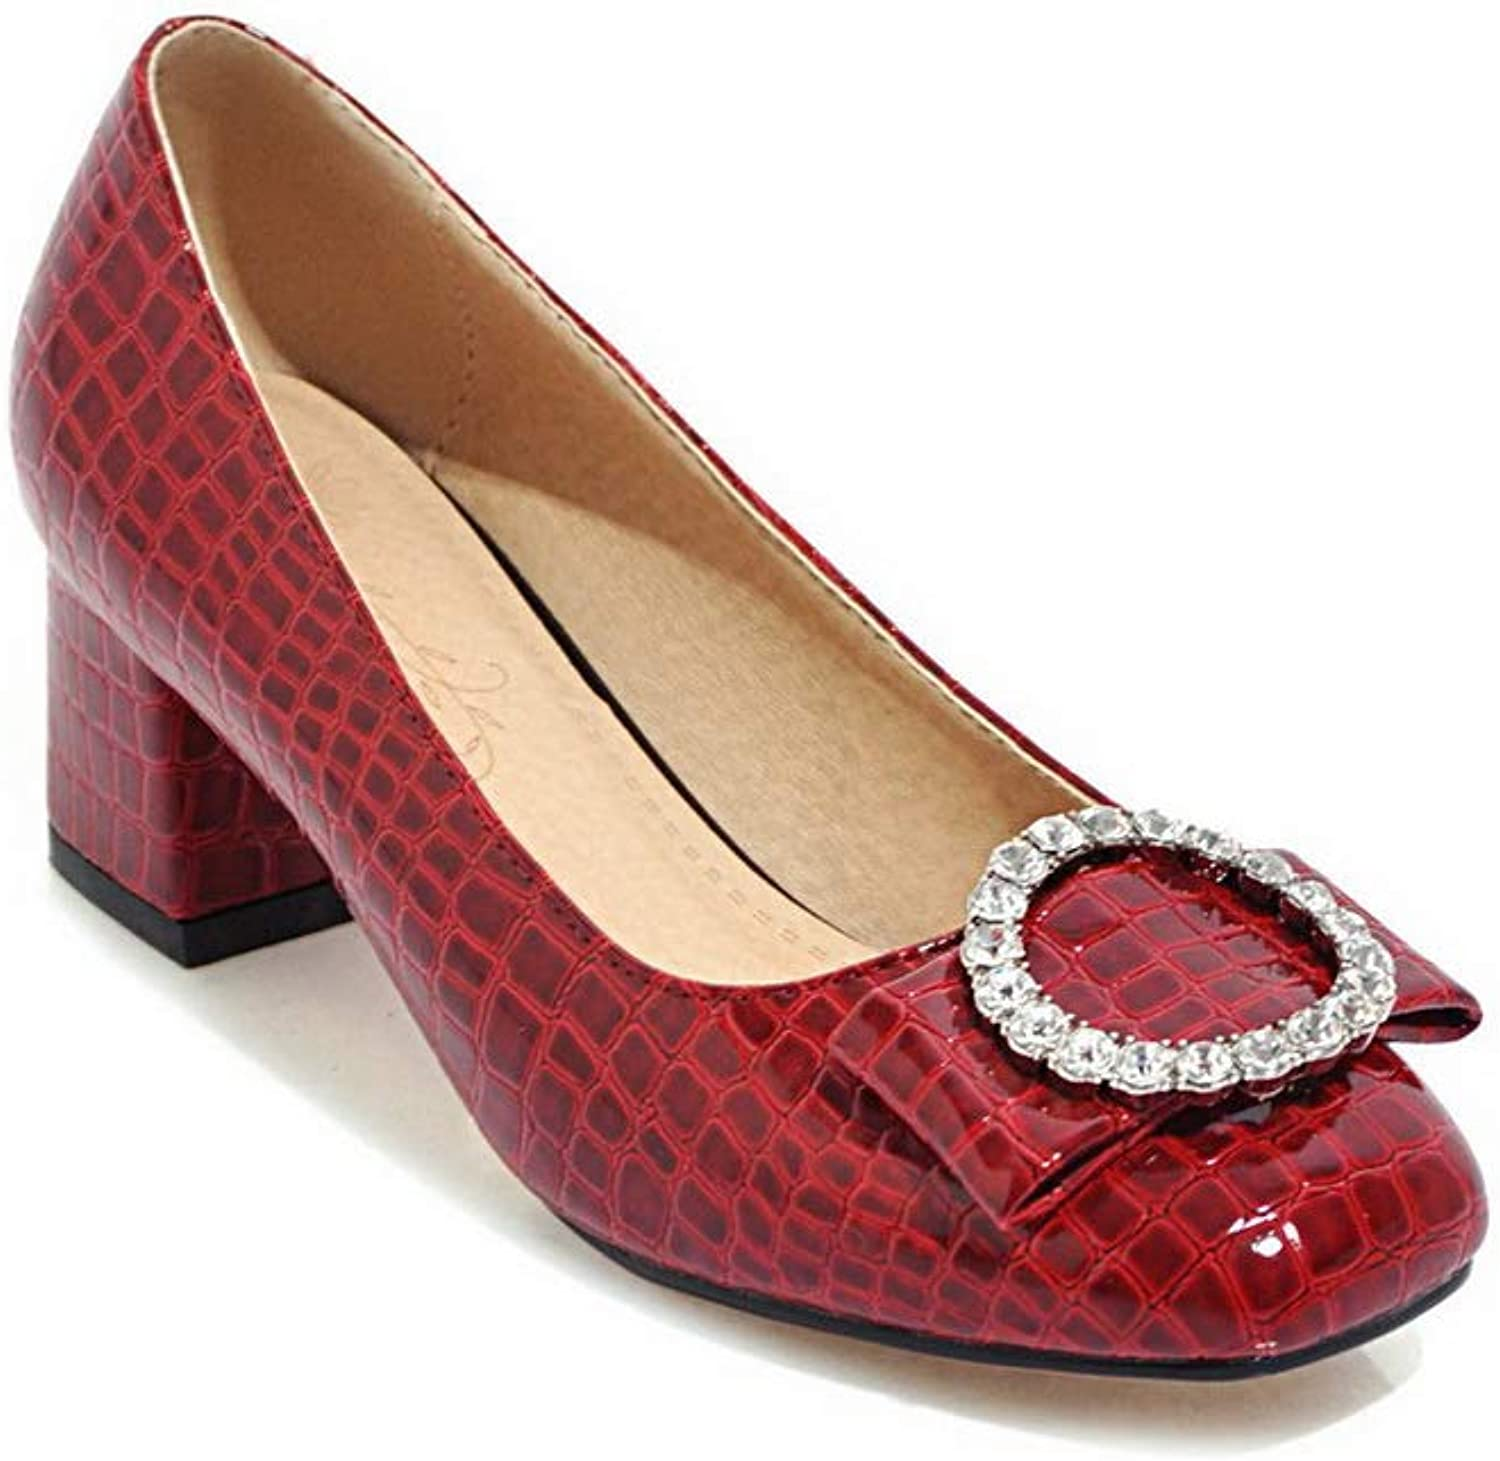 1TO9 Womens Beaded Solid Travel Urethane Pumps shoes MMS06353